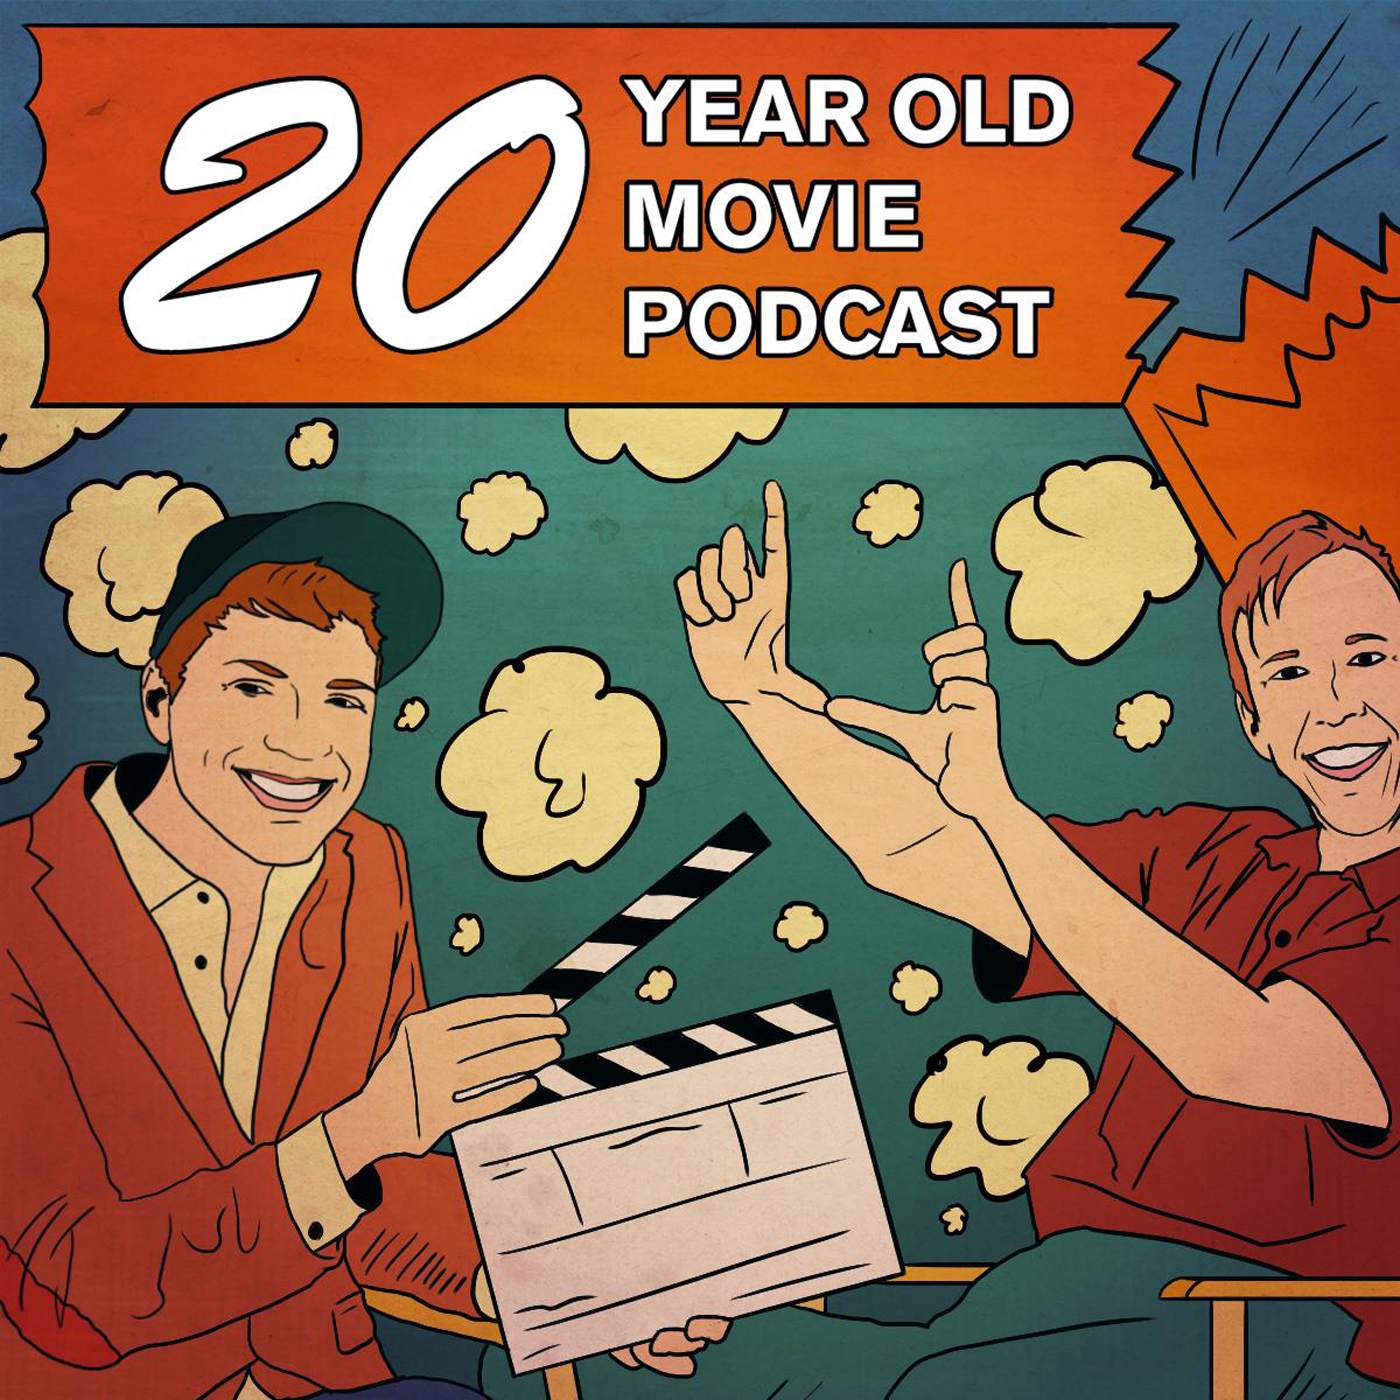 20 Year Old Movie - Comedians Matt Anderson and Joel Walkowski host their friends to watch a movie from 20 years ago. Kinda like you're sitting down with 2 or 3 of your best friends. We're gonna chat about the actors, the directors, the amazing scenes, and we're also going to talk about some other junk too. New Episodes every Tuesday.http://20yearoldmovie.libsyn.com/